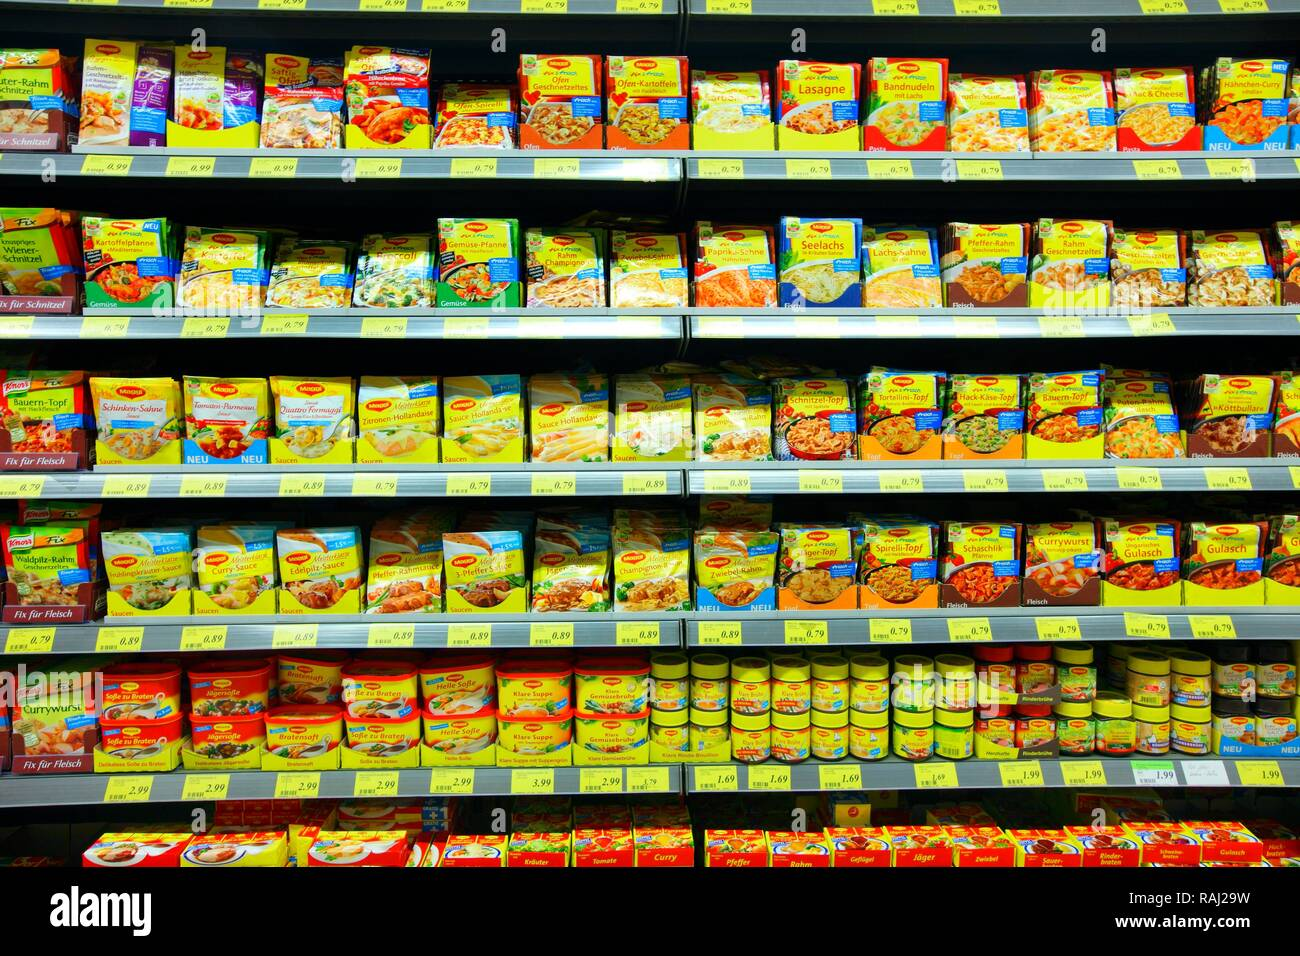 Shelves with packet soups, convenience foods, condiments, self-service, food department, supermarket - Stock Image